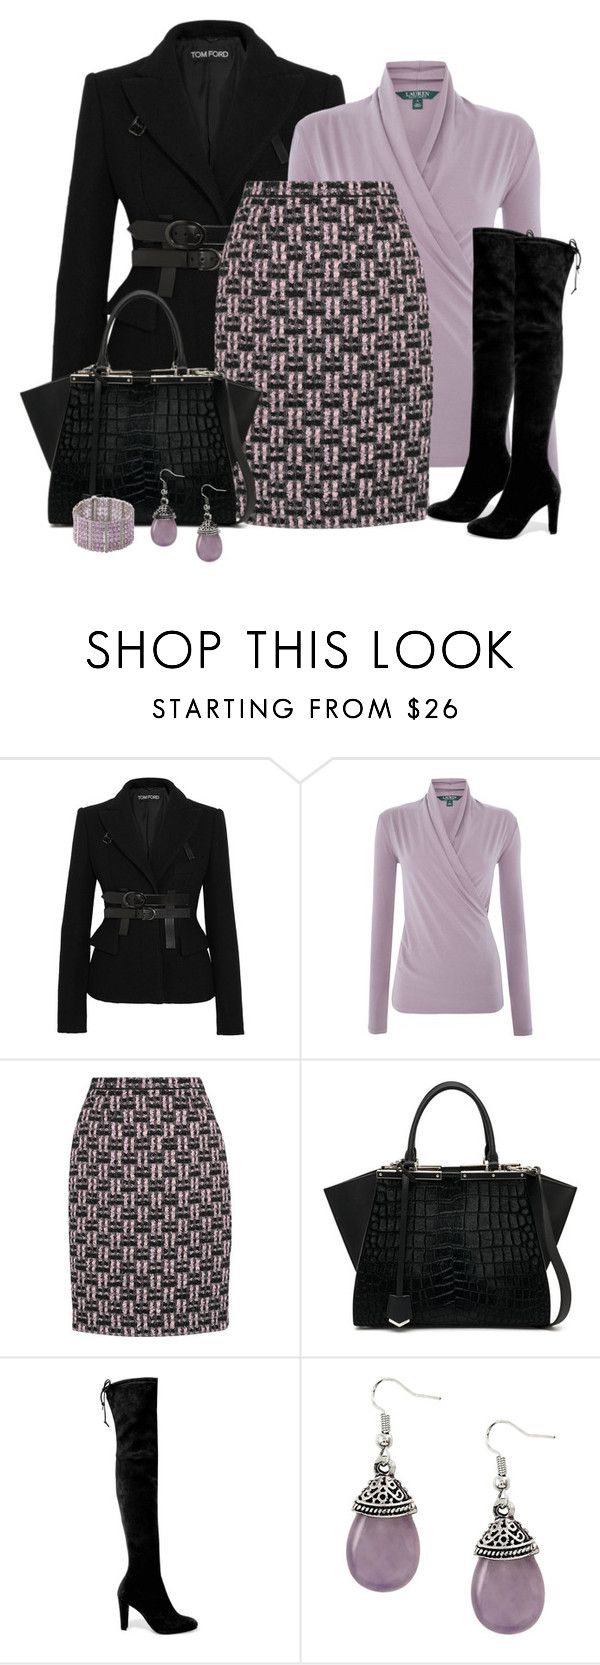 """ofis..."" by nezahat-kaya ❤ liked on Polyvore featuring Tom Ford, Lauren Ralph Lauren, Oscar de la Renta, Fendi and Stuart Weitzman"